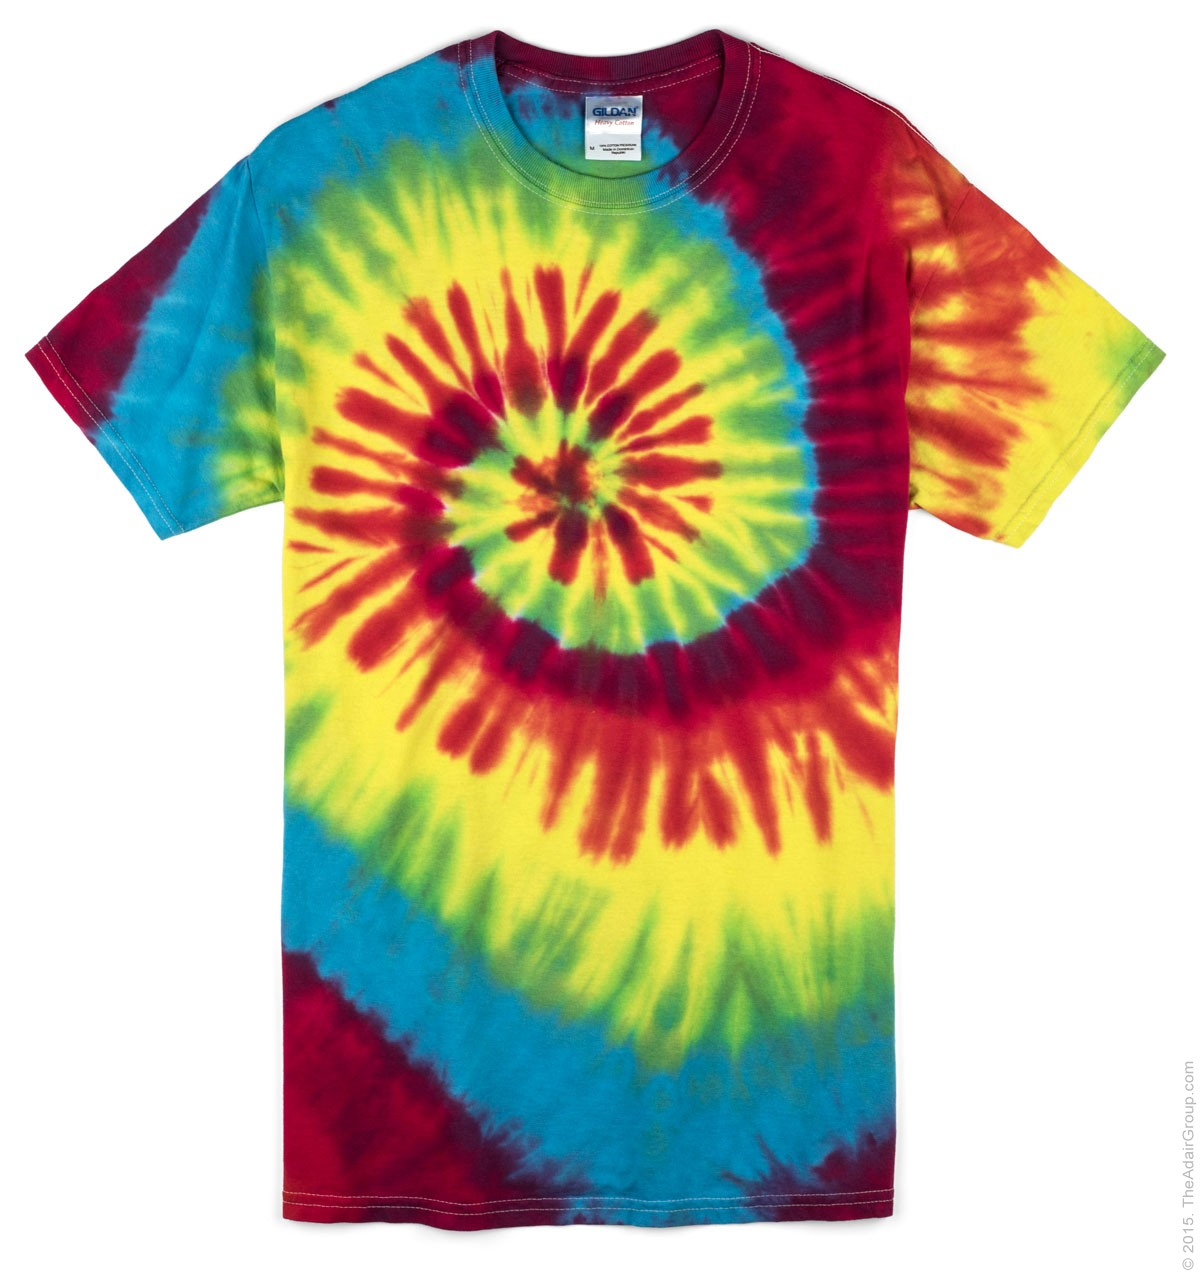 cold pizza tie dye shirts photo - 1